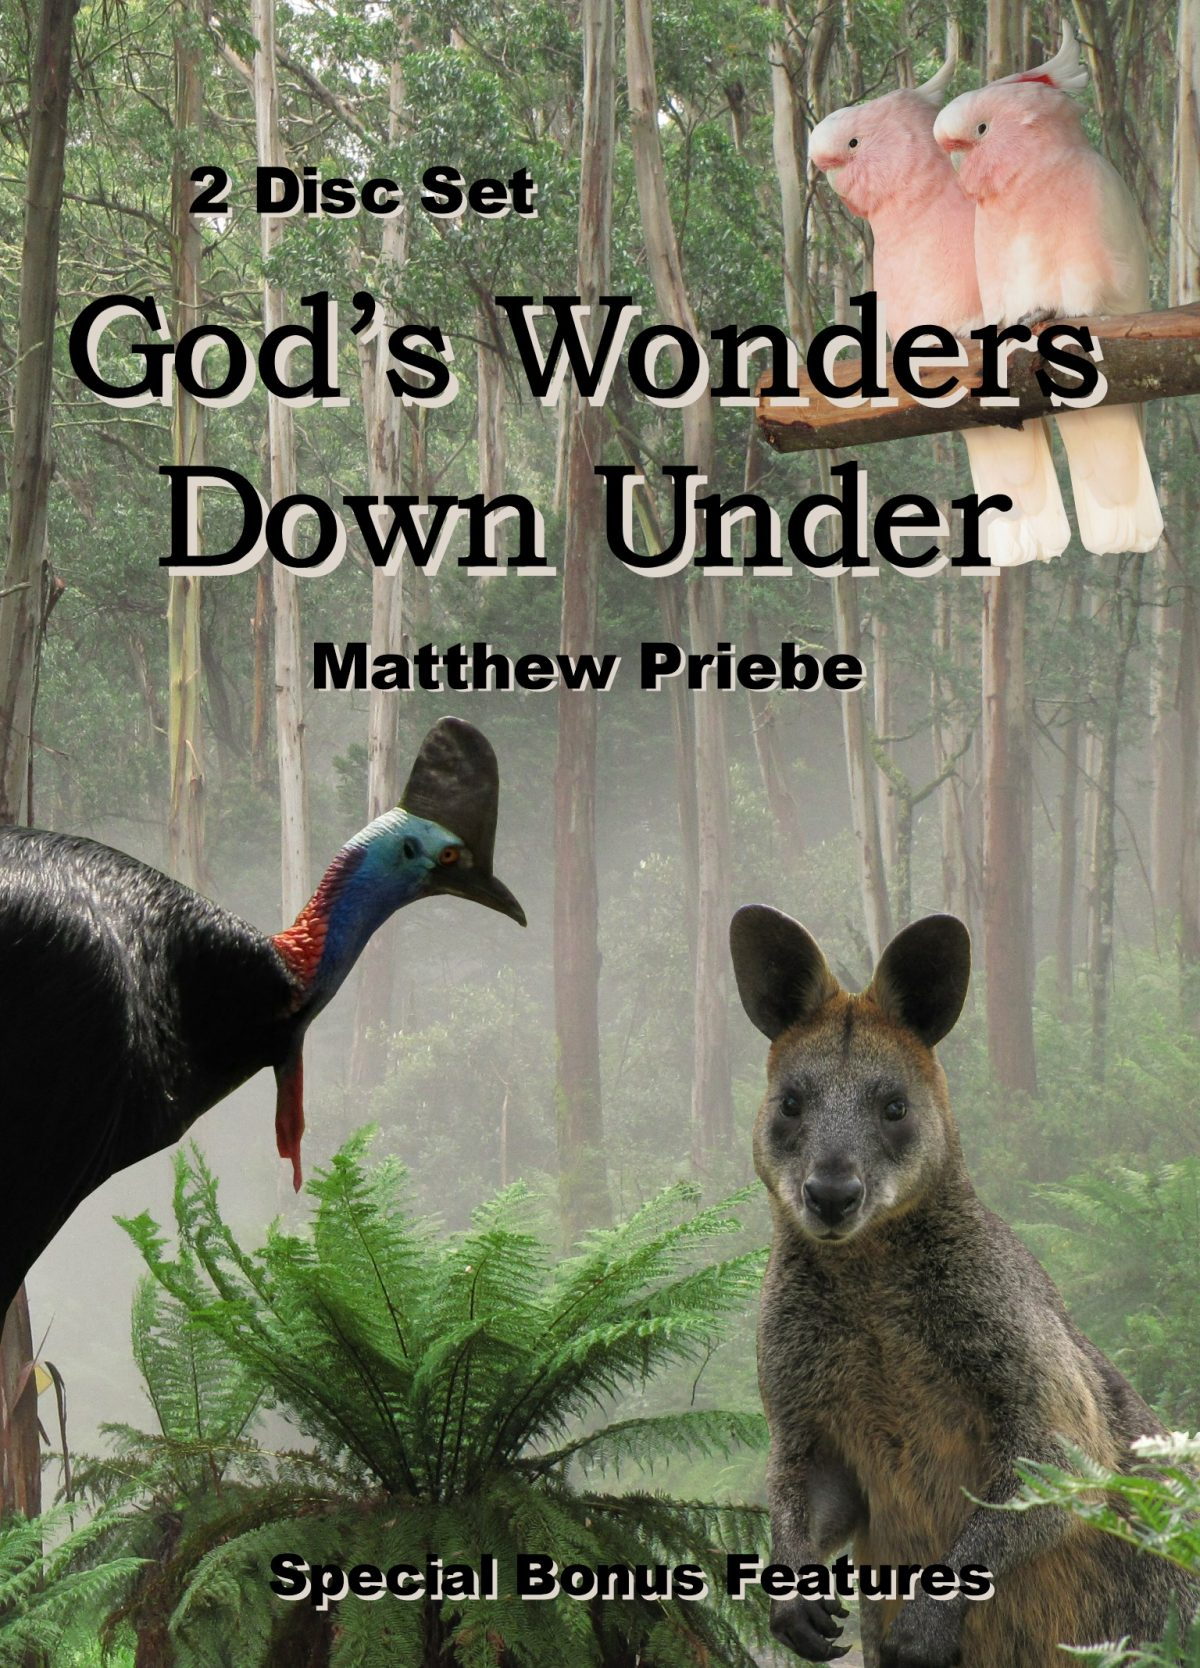 God's Wonders Down Under